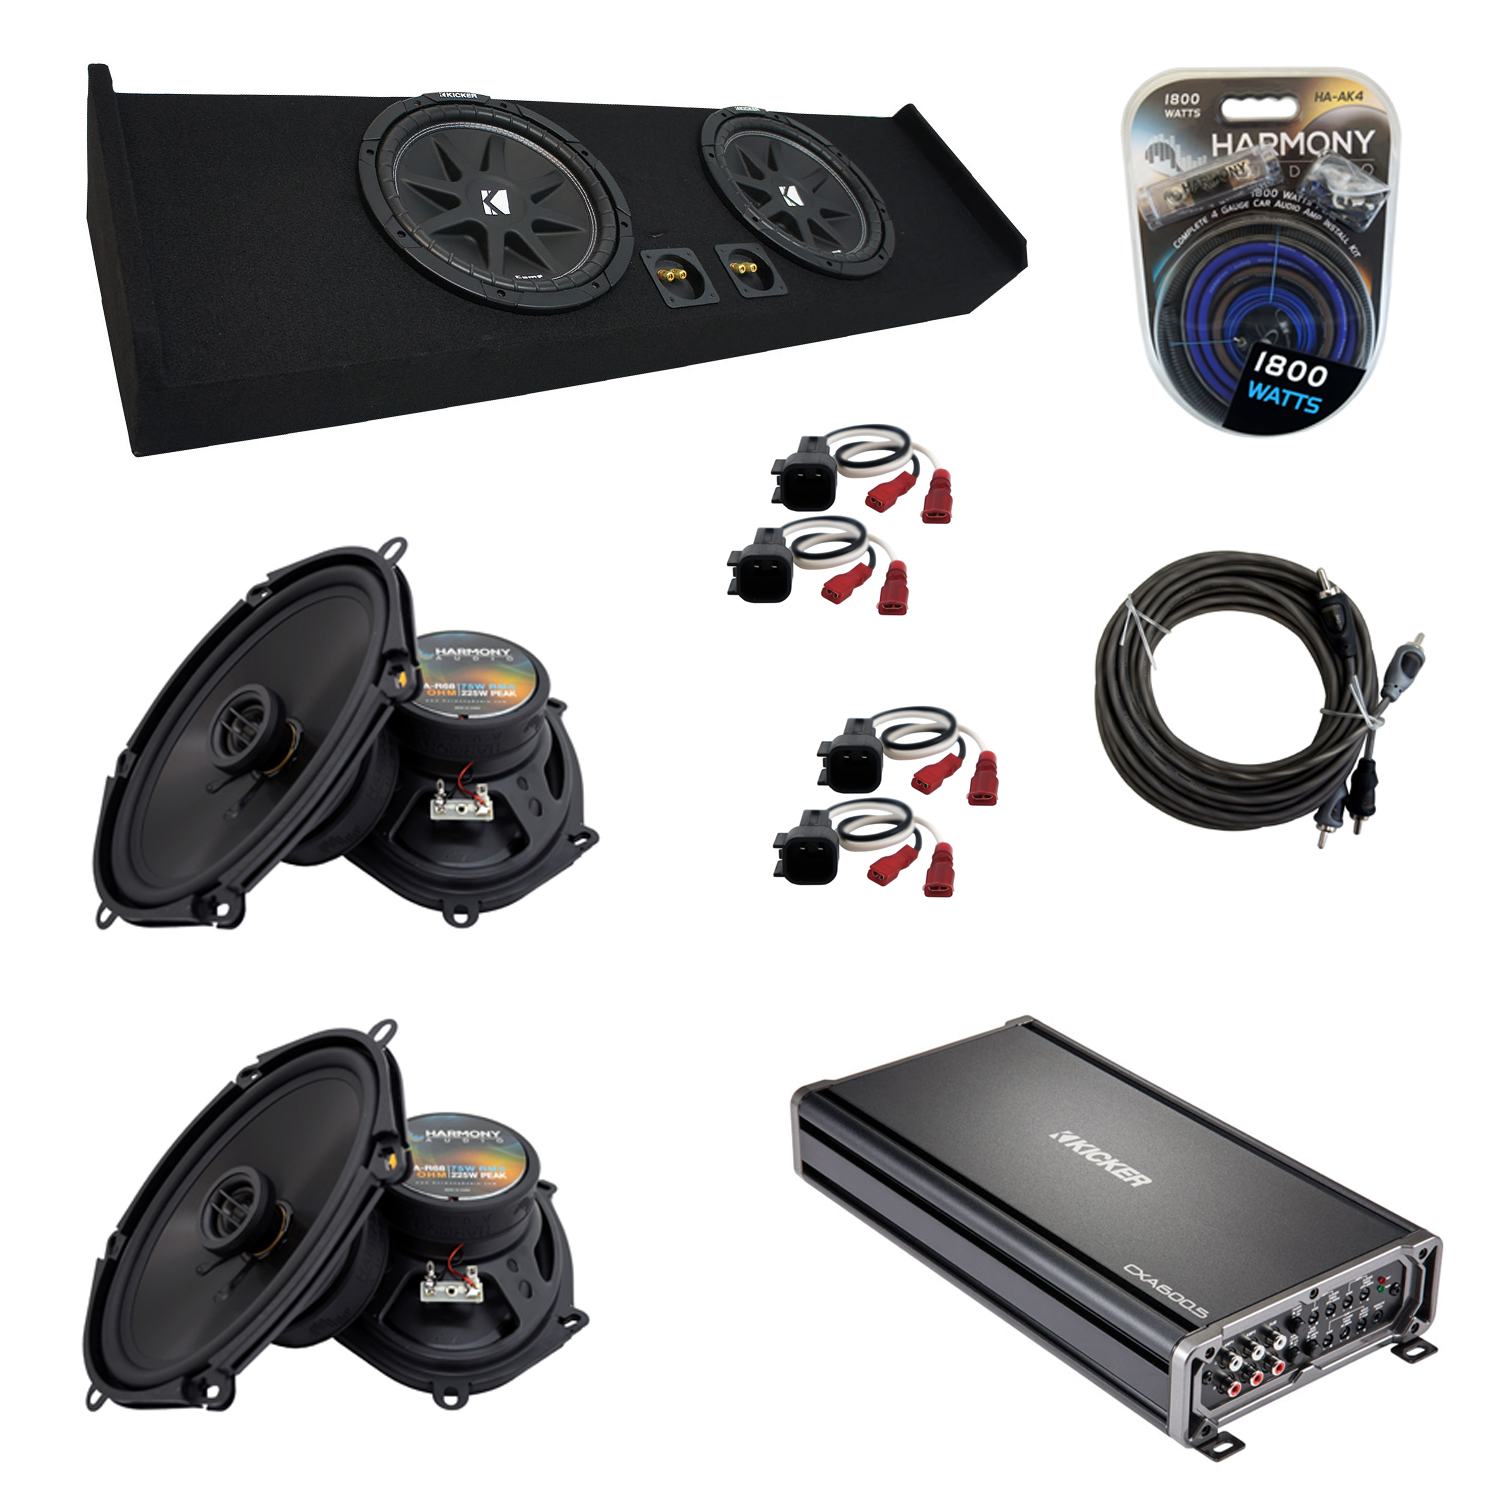 "Compatible with Ford F-150 2009-2015 Super Crew Truck Kicker Dual 10"" Sub Box Speakers & Amp"